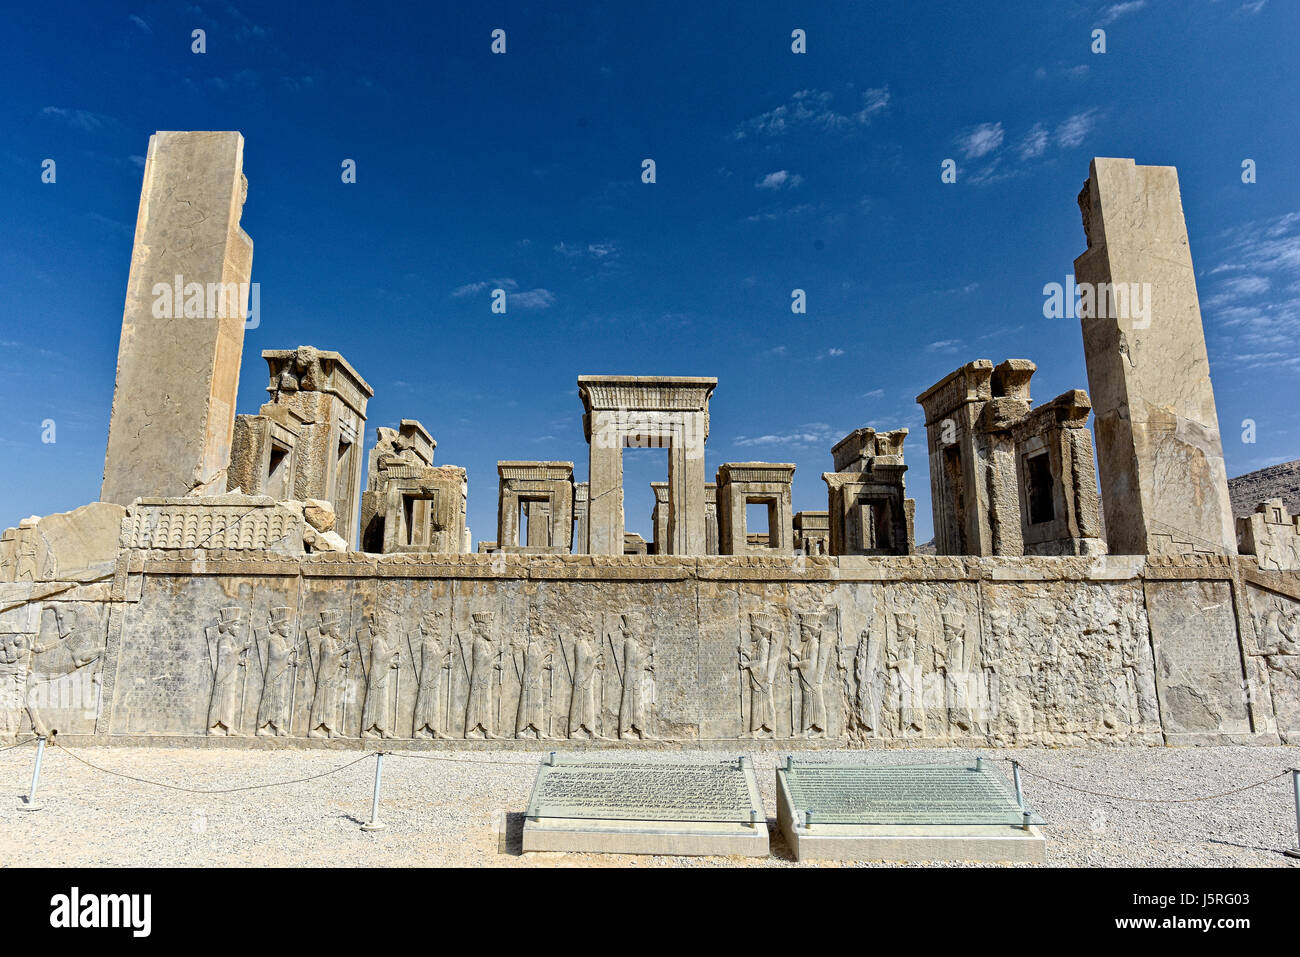 Ruins At Persepolis Historical City In Shiraz The Construction Of Stock Photo Alamy